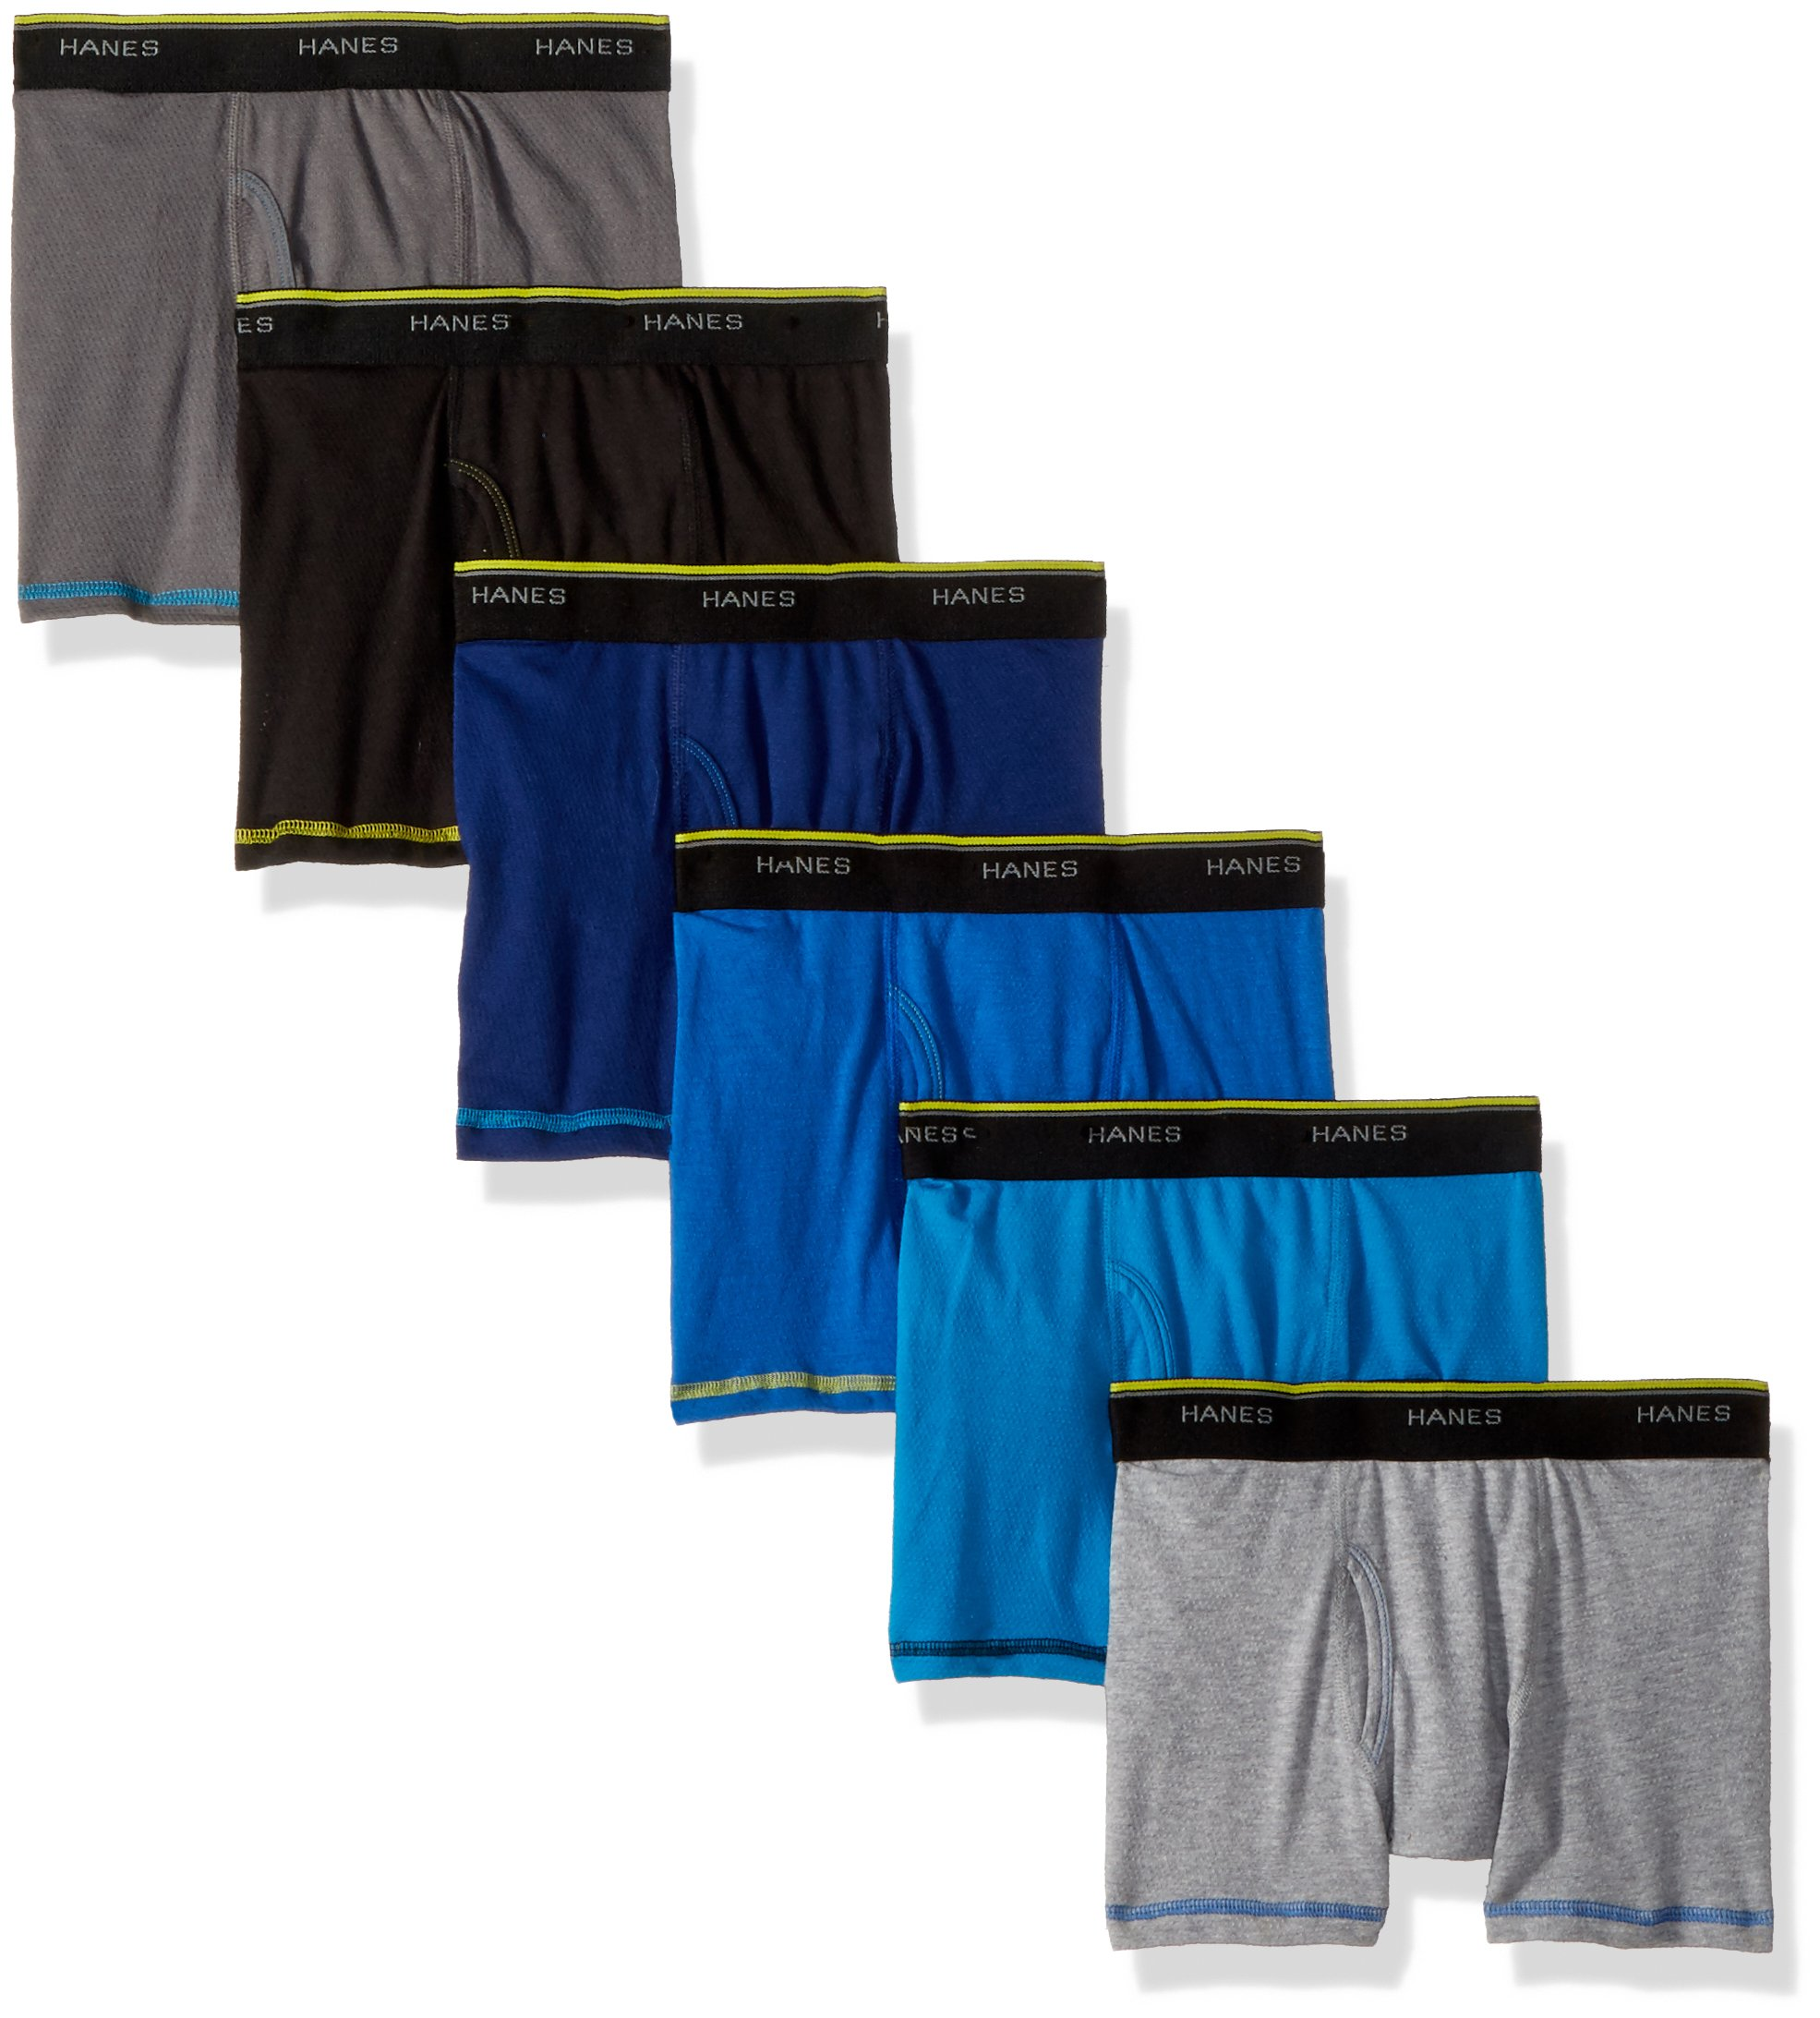 Hanes Boys' Cool Comfort Breathable Mesh Boxer Brief 6-Pack, Assorted Large